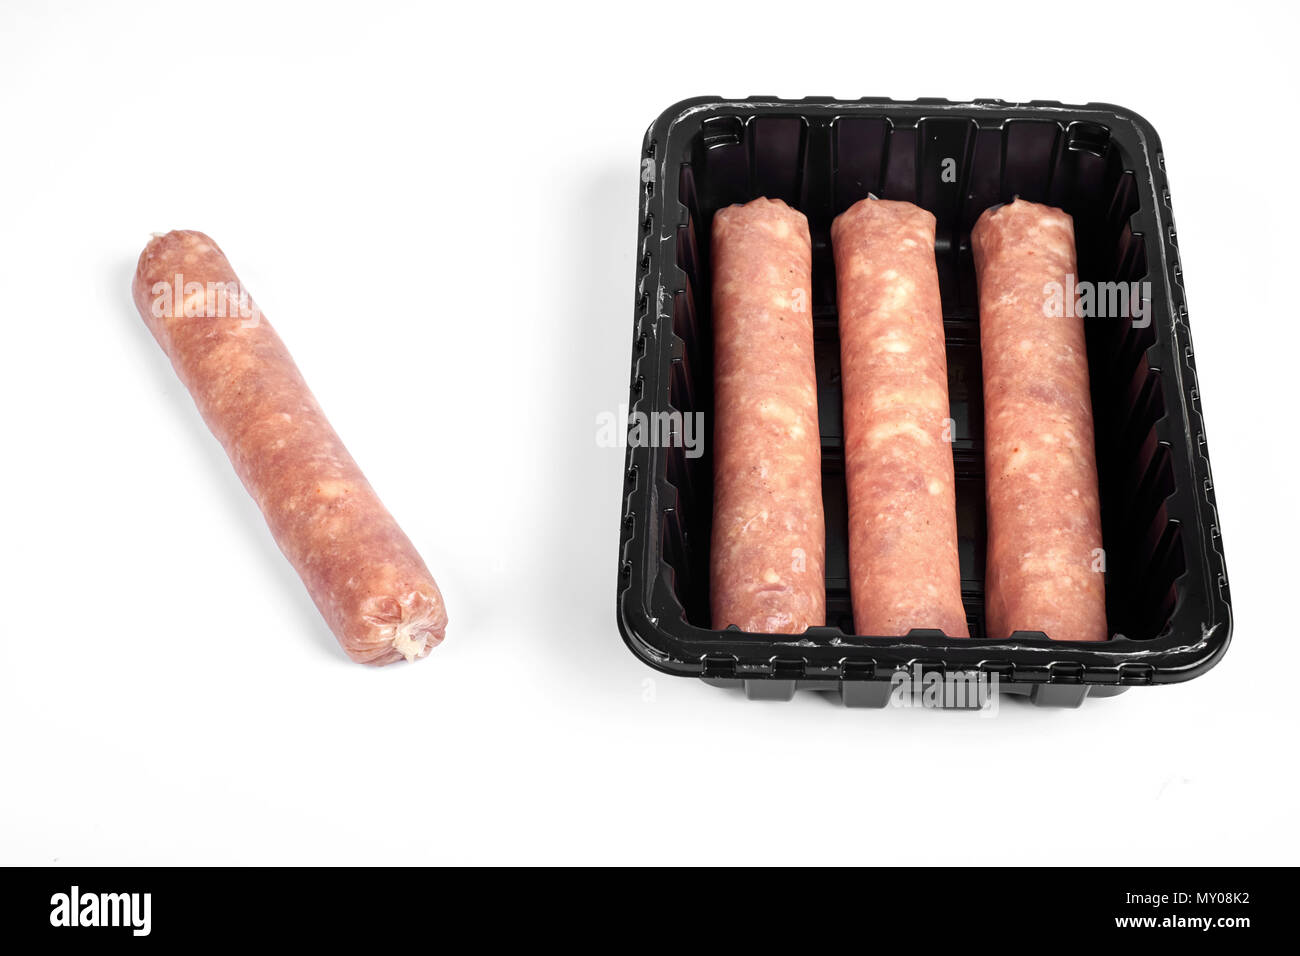 Package of raw sausages isolated on white background - Stock Image